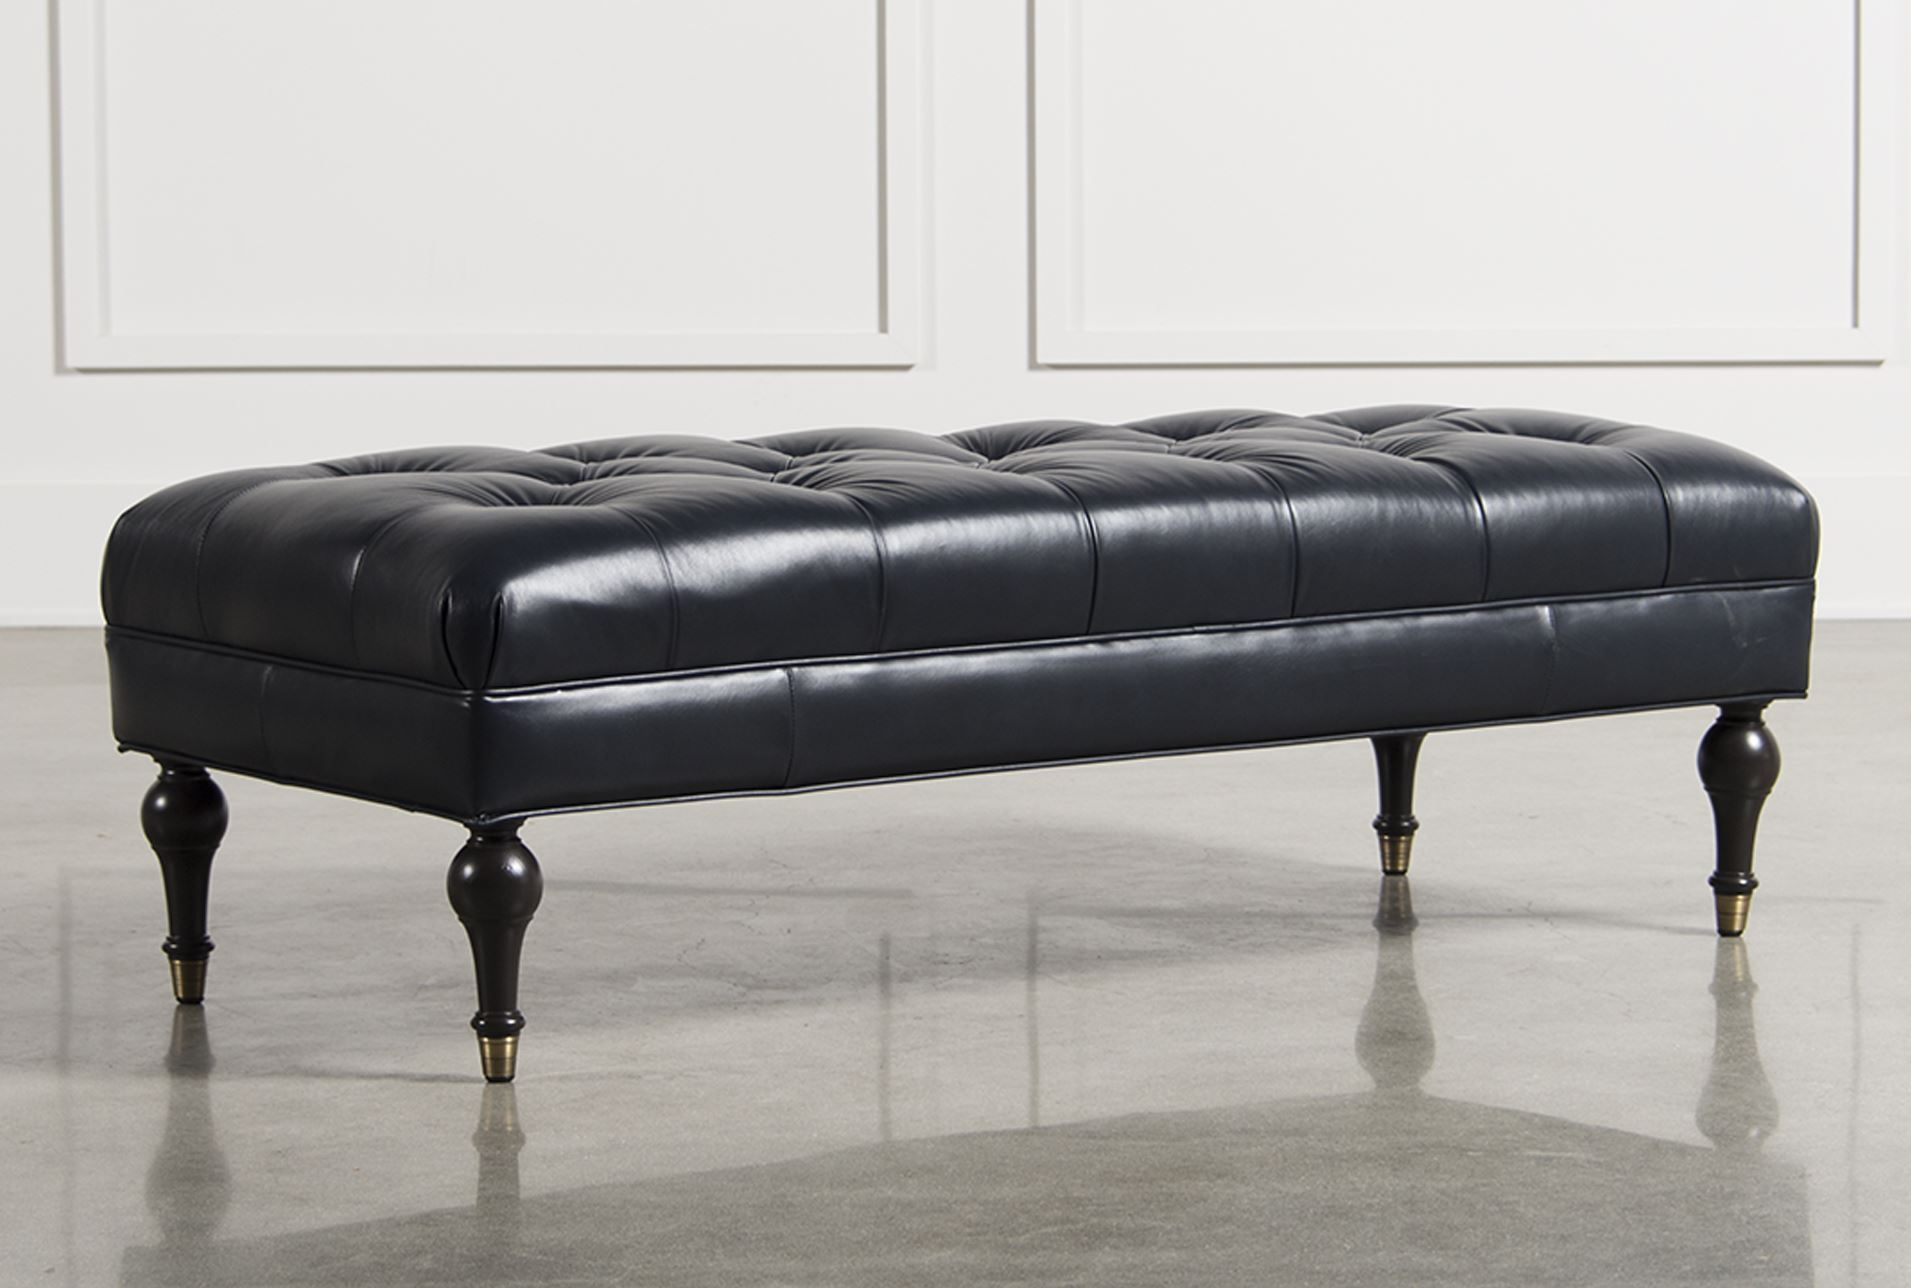 Abigail Navy Leather Cocktail Ottoman - Signature | Atlanta House ...